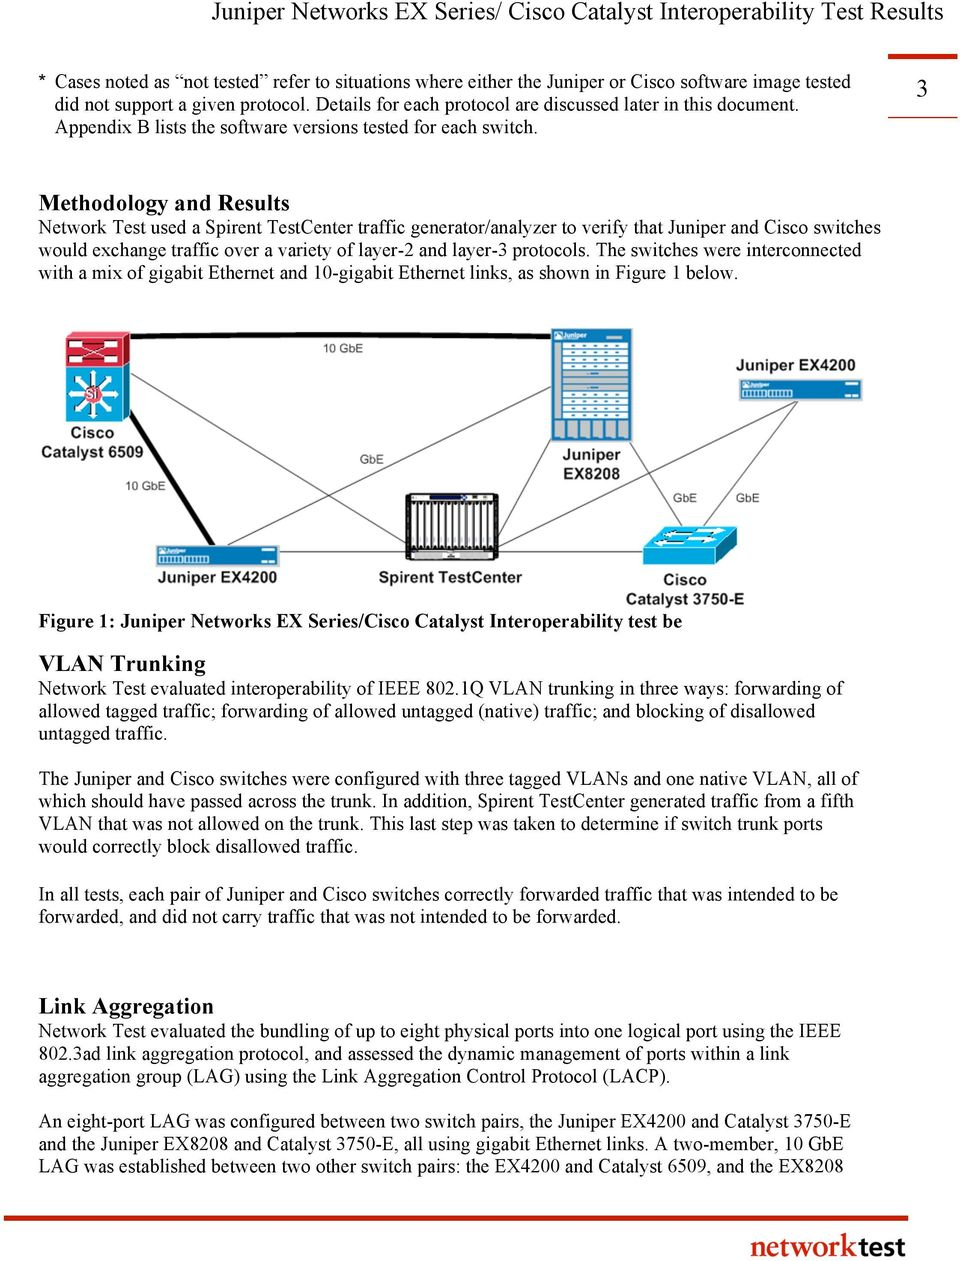 3 Methodology and Results Network Test used a Spirent TestCenter traffic generator/analyzer to verify that Juniper and Cisco switches would exchange traffic over a variety of layer-2 and layer-3